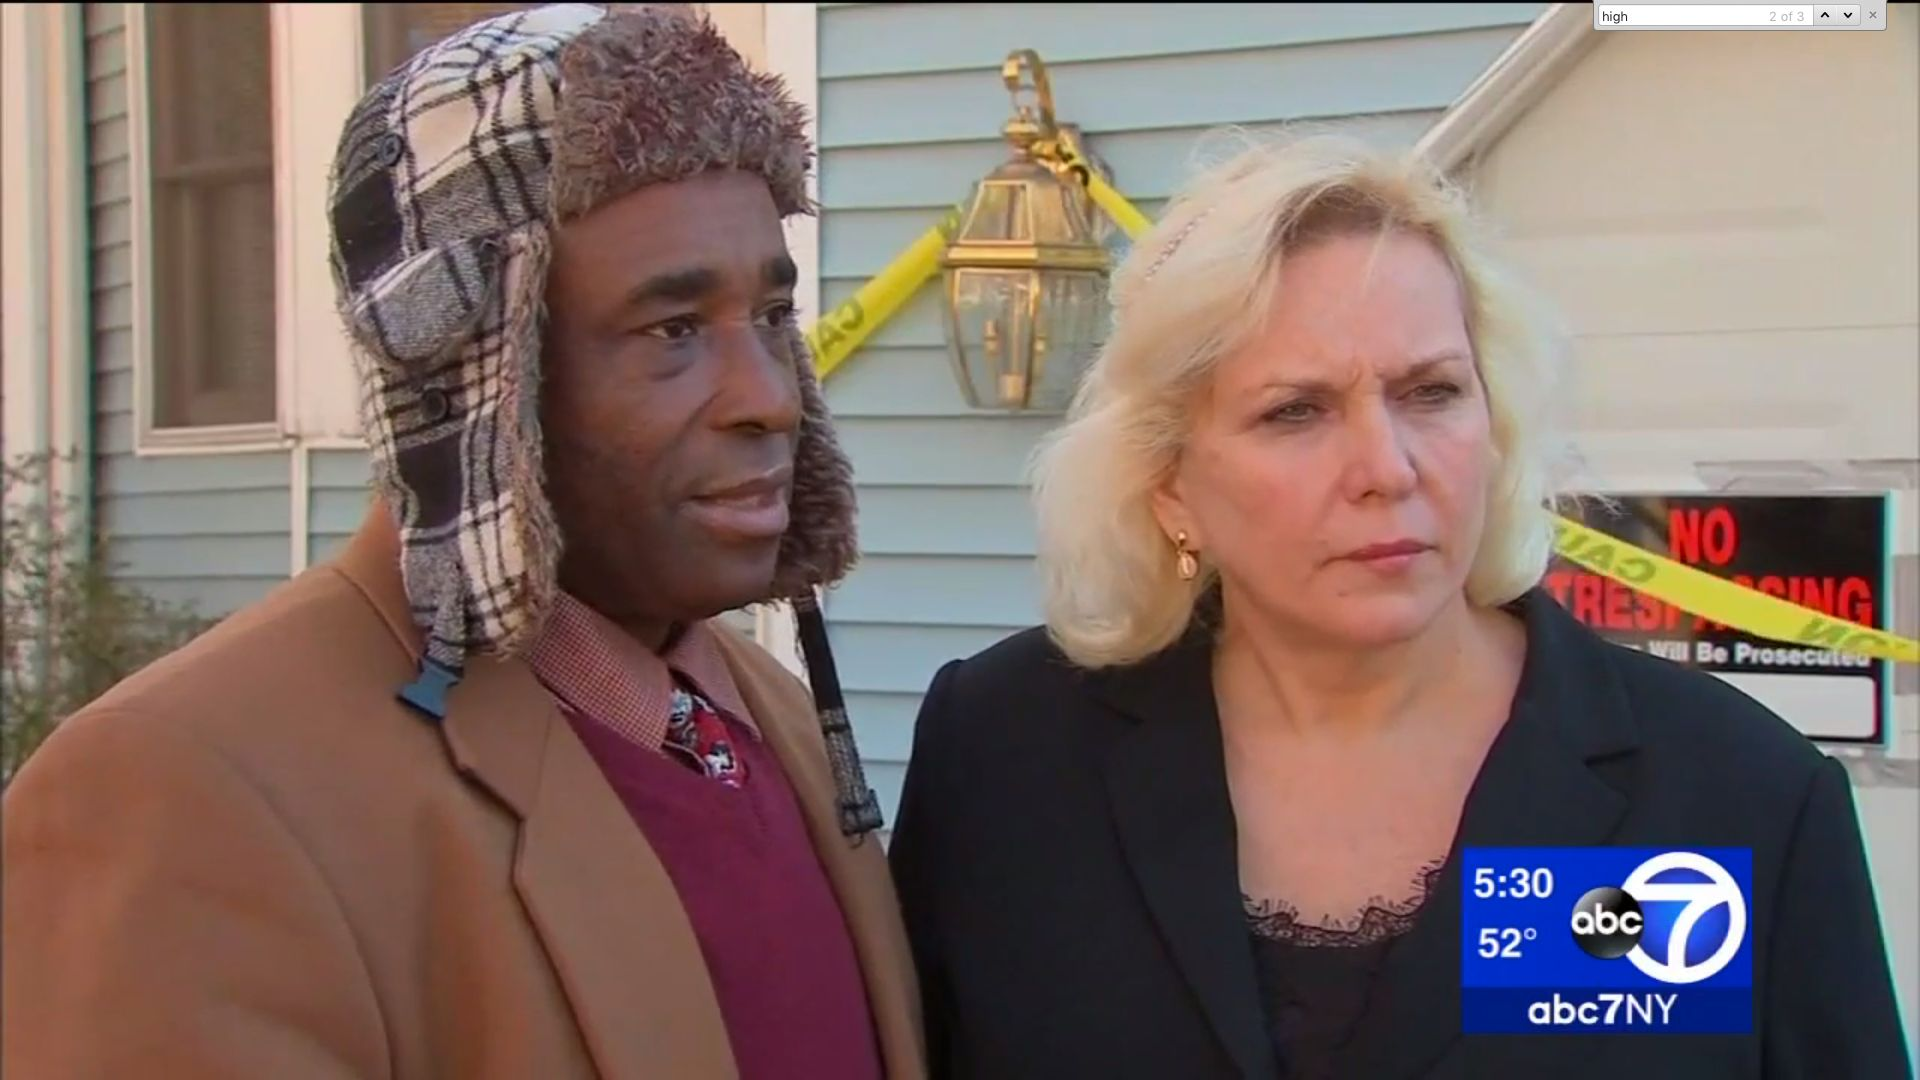 Heather Lindsay and her husband, Lexene Charles, say they have been victims of racist harassmentin their neighborhood b